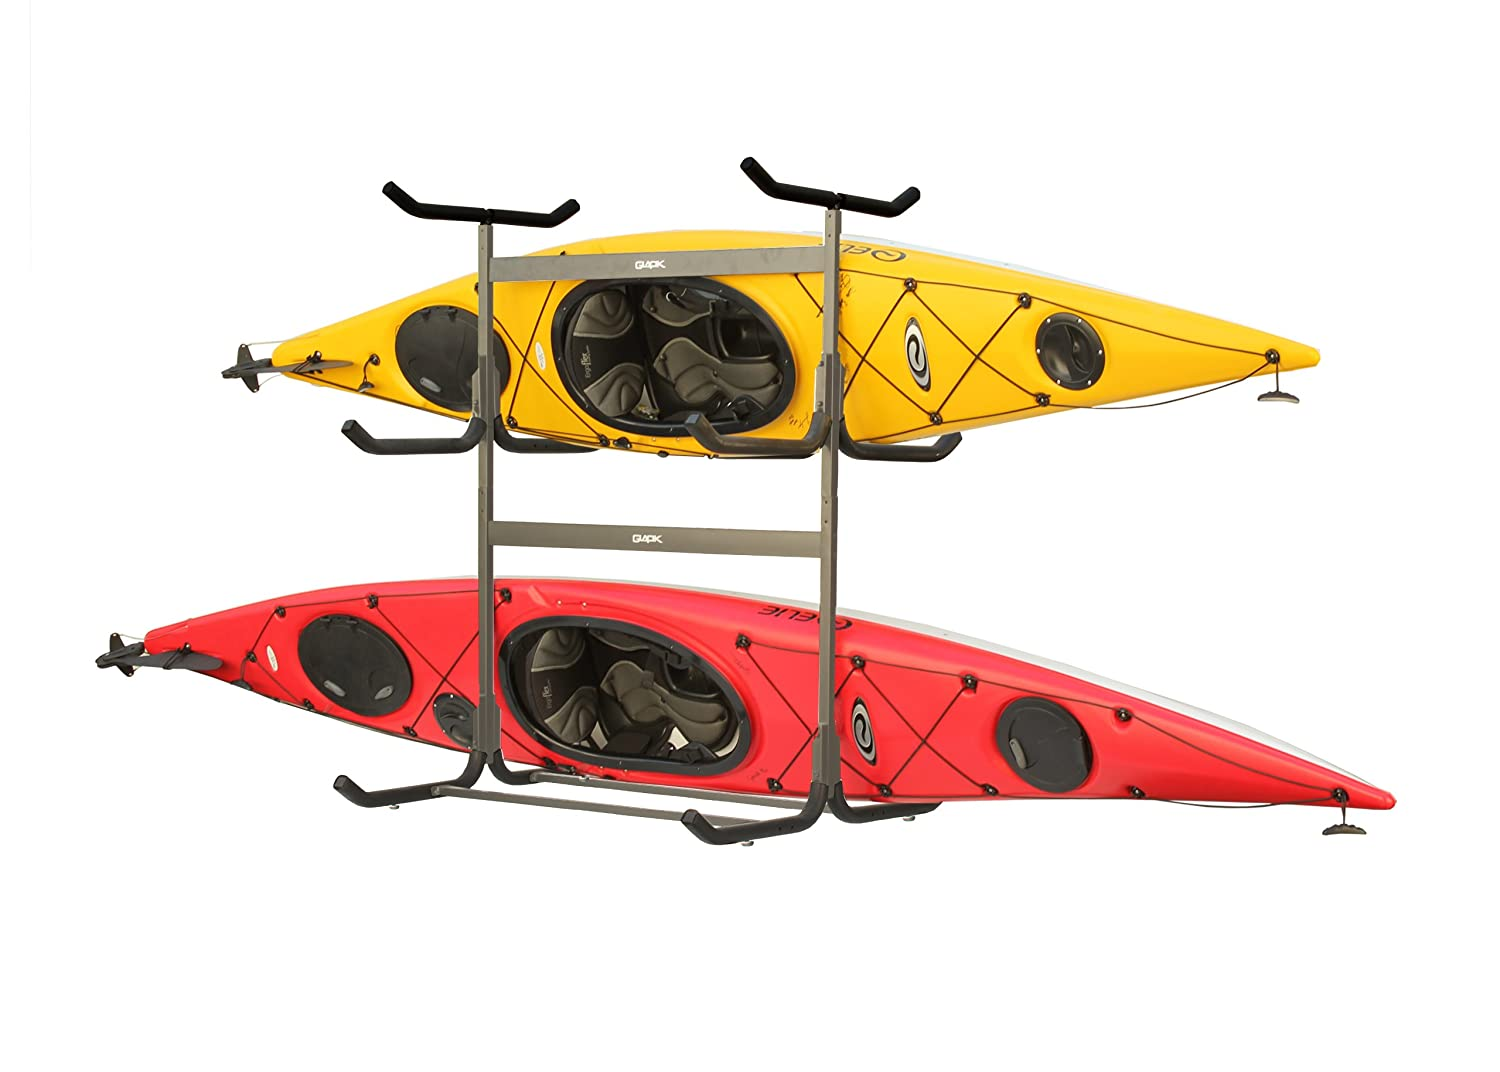 Amazon.com : Stoneman Sports G 535 C4 Glacik Freestanding Portable 5 Kayak  Or Canoe Storage Rack With Heavy Duty Caster Wheels, Double Sided, Bronze  Colored ...